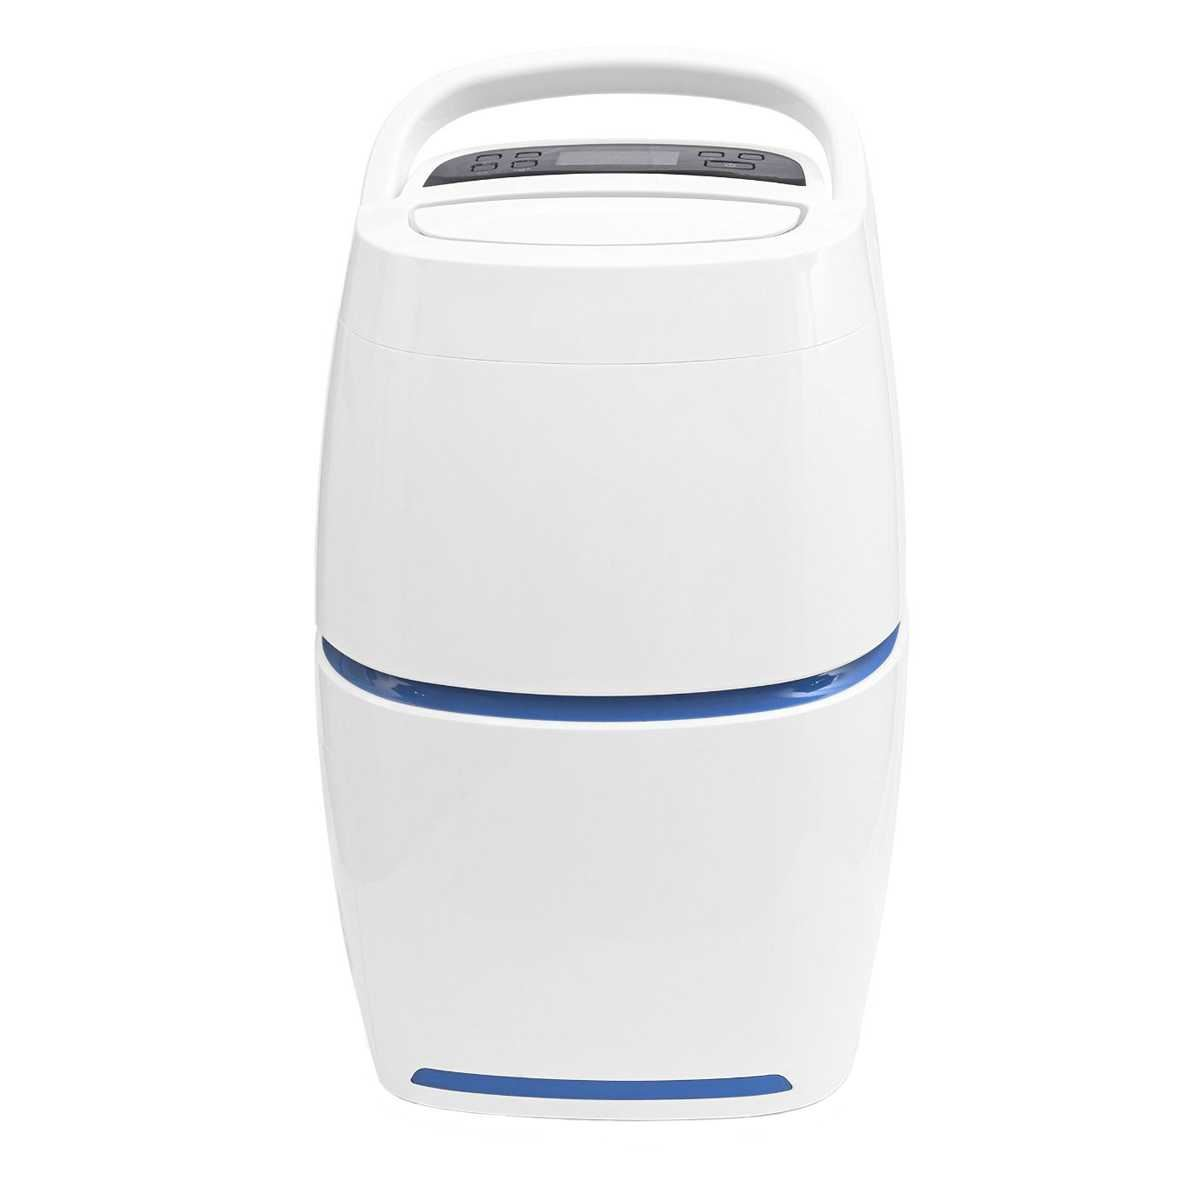 Picture of Oster Dehumidifier BD-20